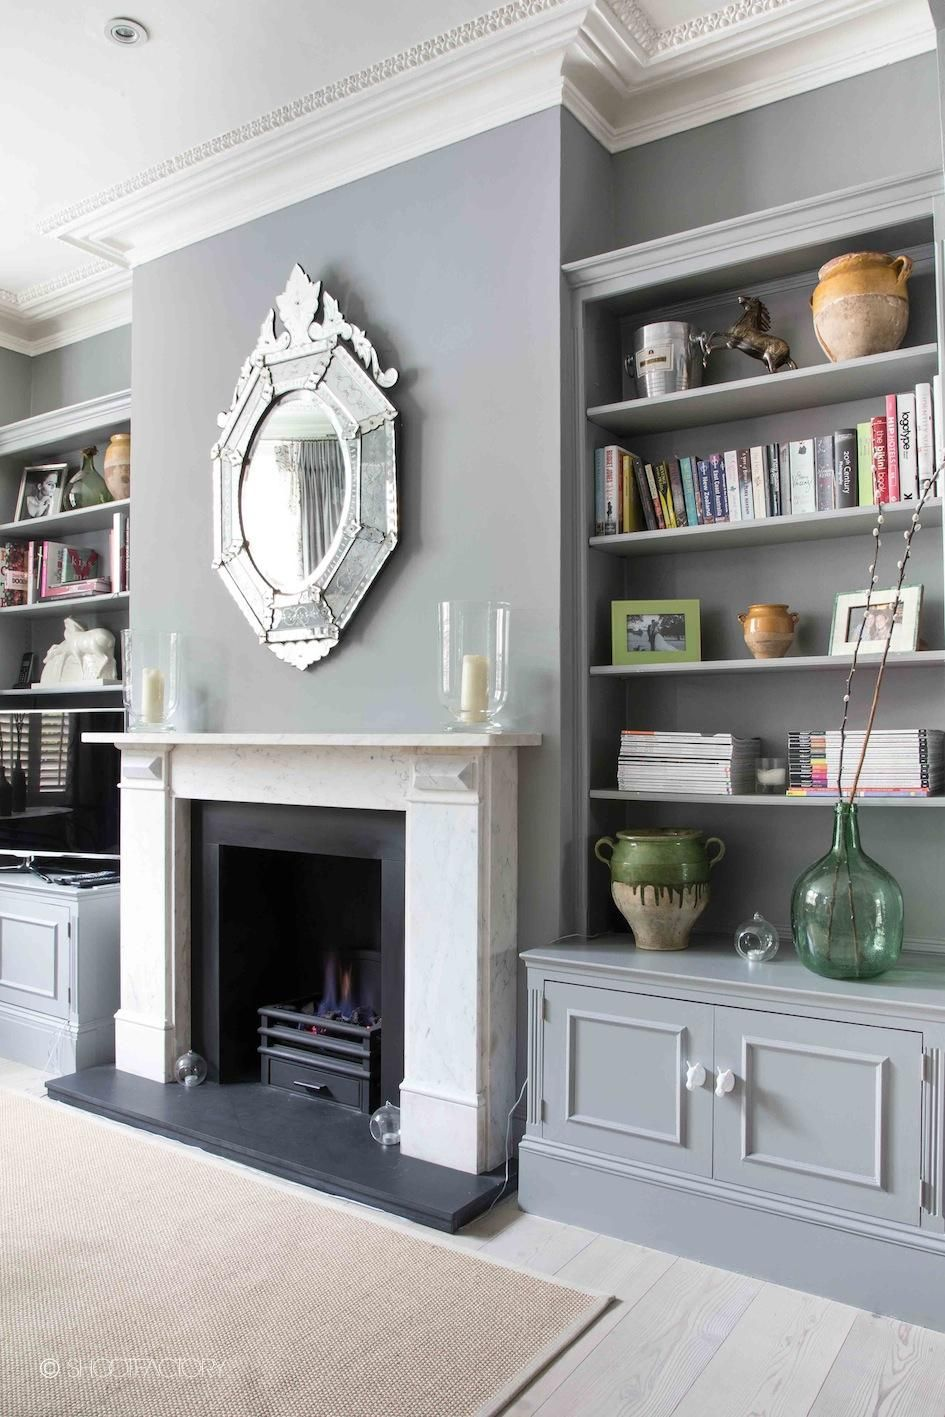 10 Tips For Decorating With Mirrors | Victorian terrace, Photoshoot ...